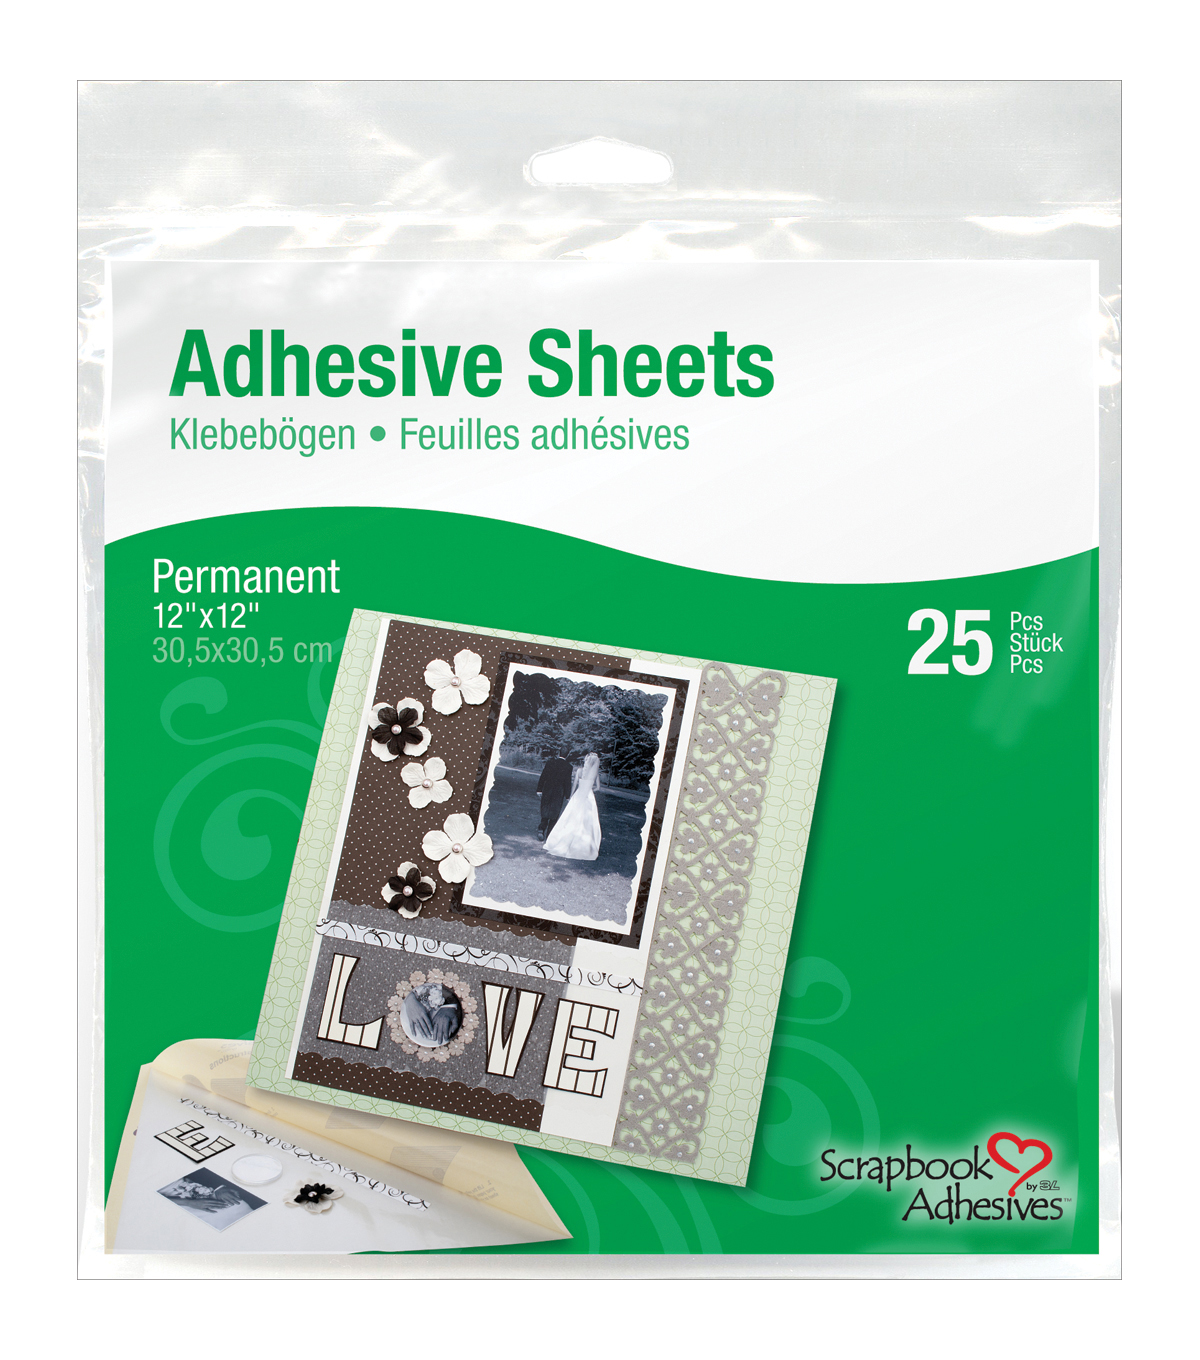 3L Permanent Adhesive Sheets